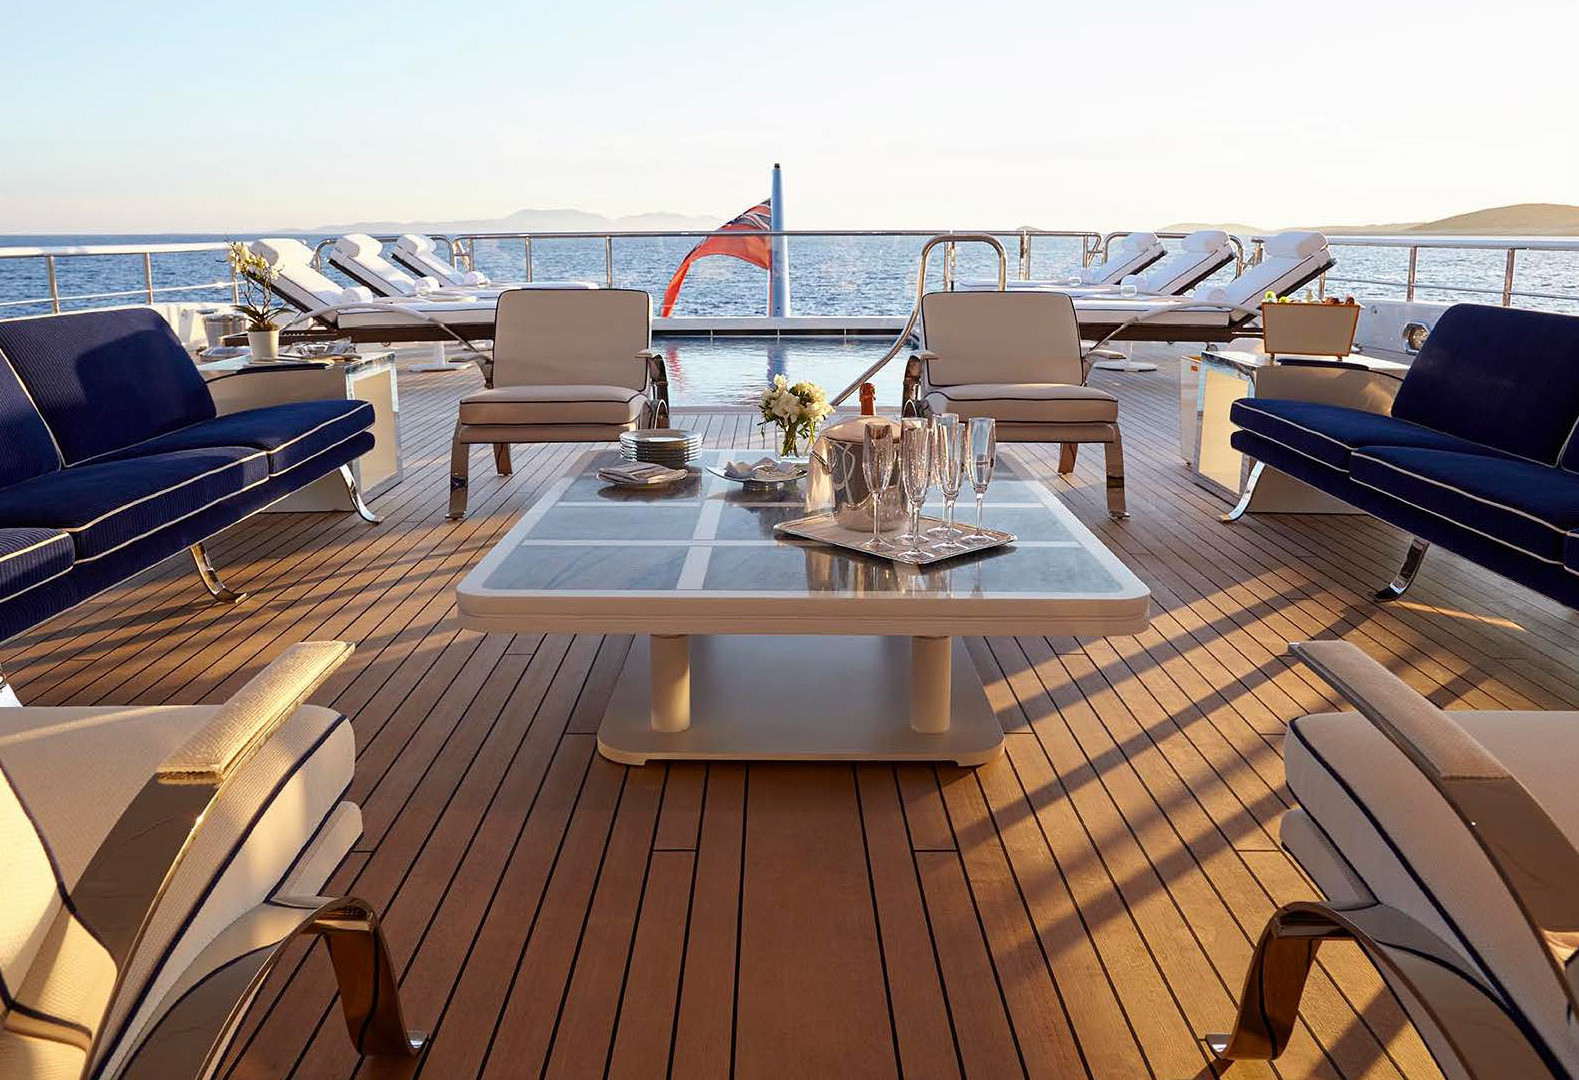 Yacht AQUARIUS - one of the many deck areas for relaxation...